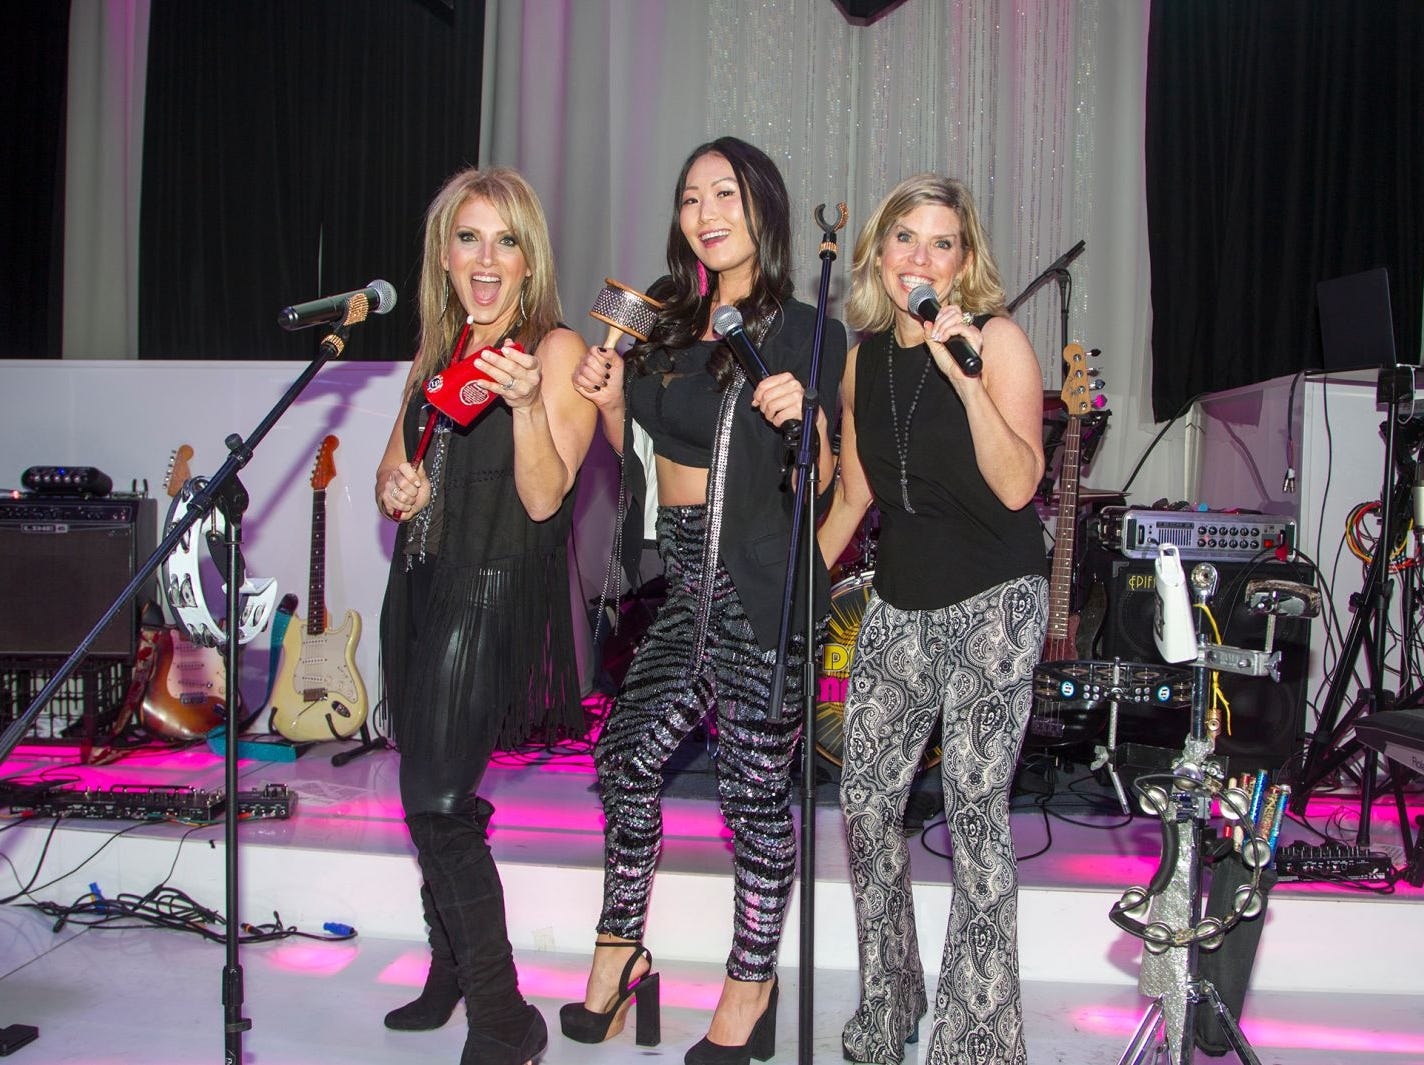 Stacy Esser, Mina Barany, Donna Weintraub. Jewish Federation of Northern New Jersey held its first Girl's Night Out dance party at Space in Englewood. 01/24/2019